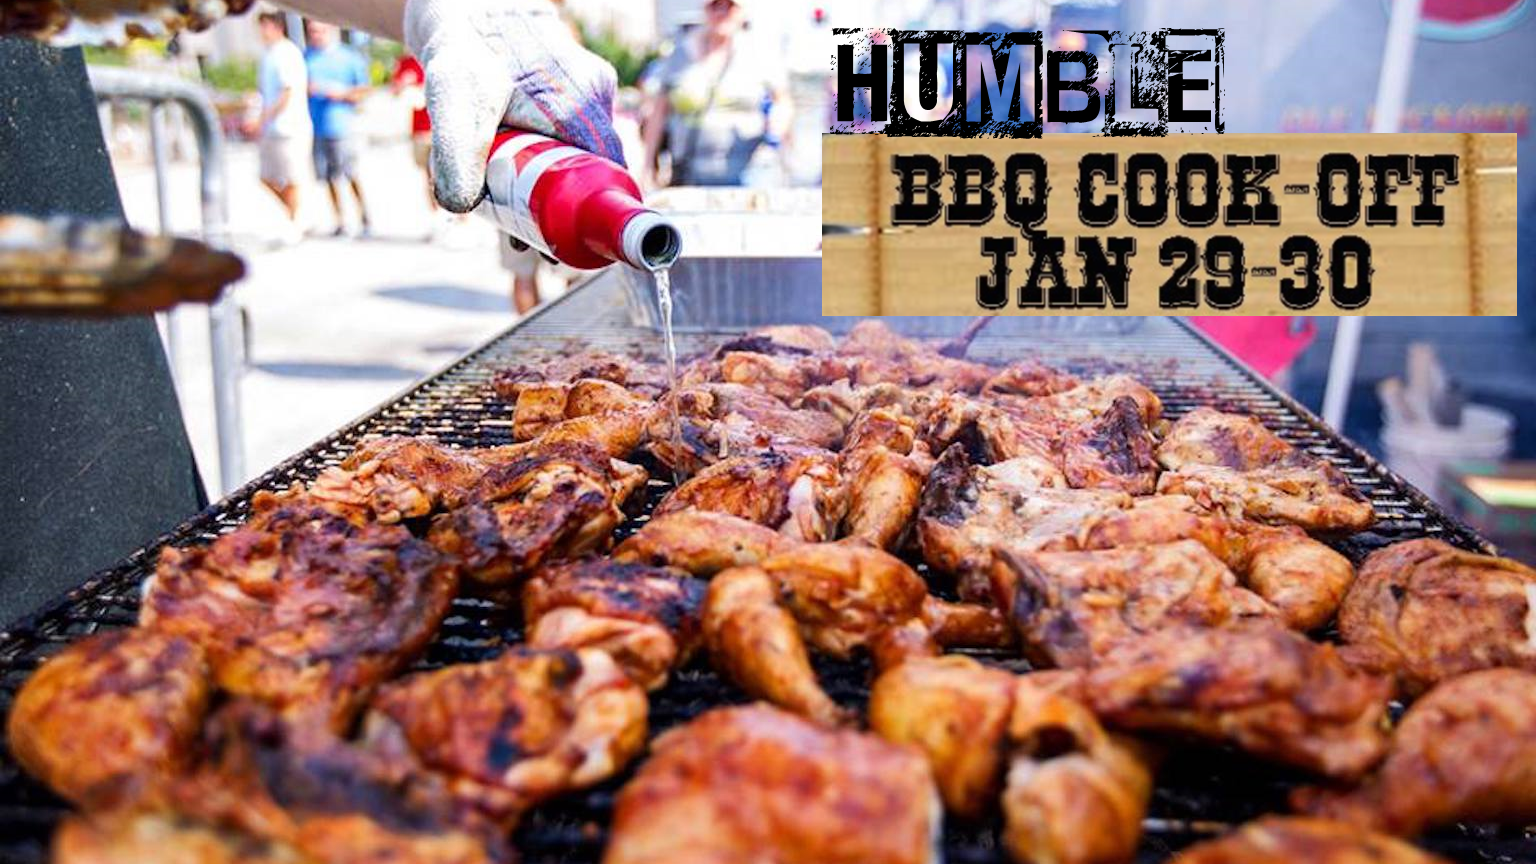 HUMBLE BBQ COOK-OFF